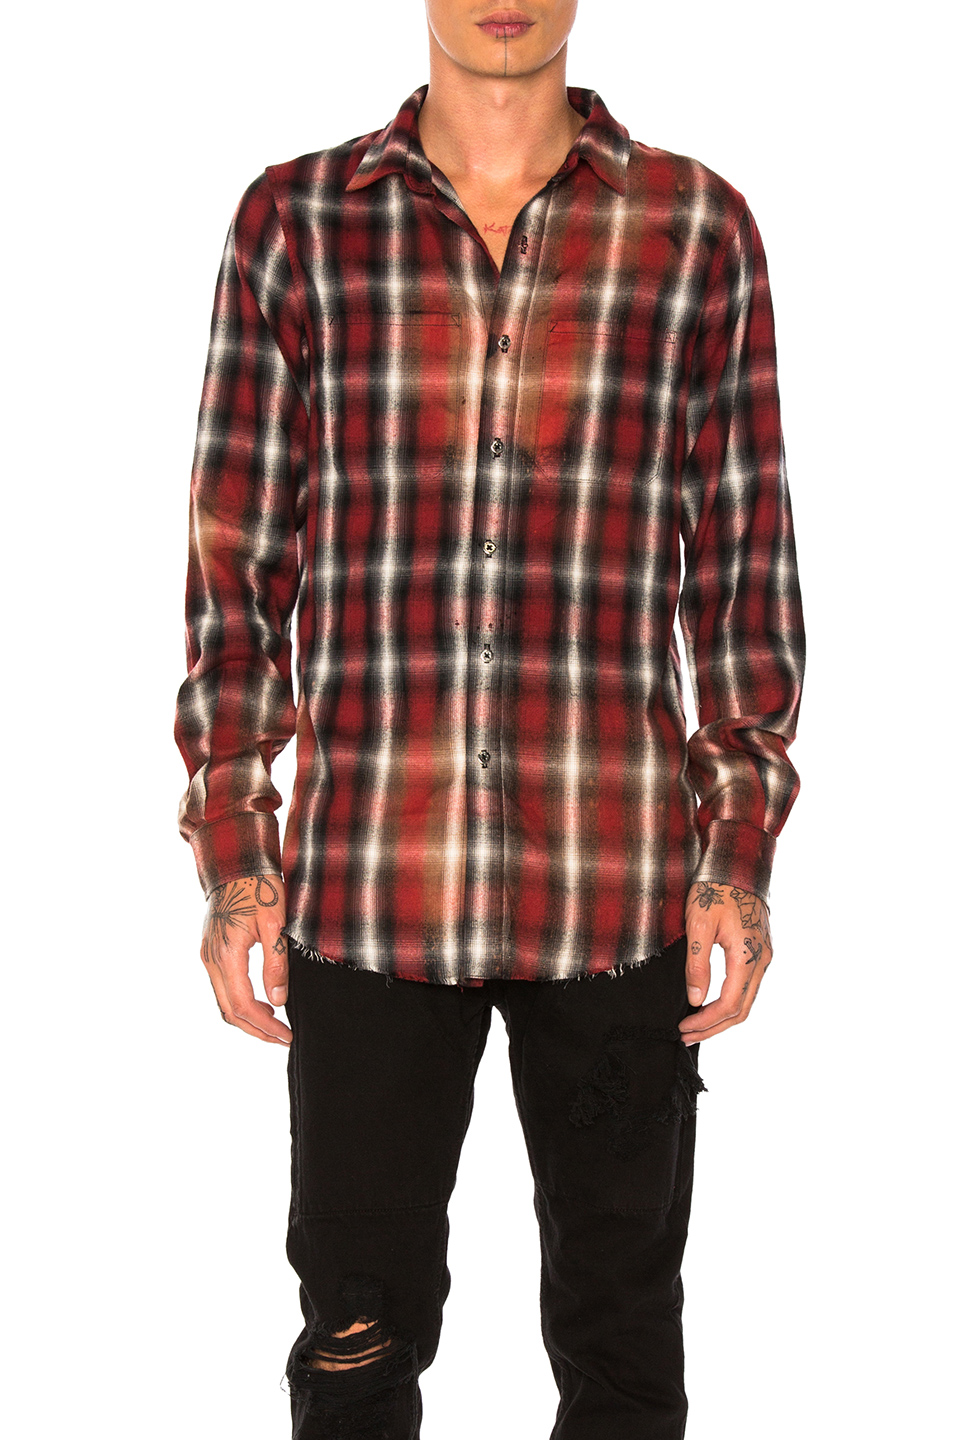 Amiri Spray Plaid Shirt in Red,Checkered & Plaid